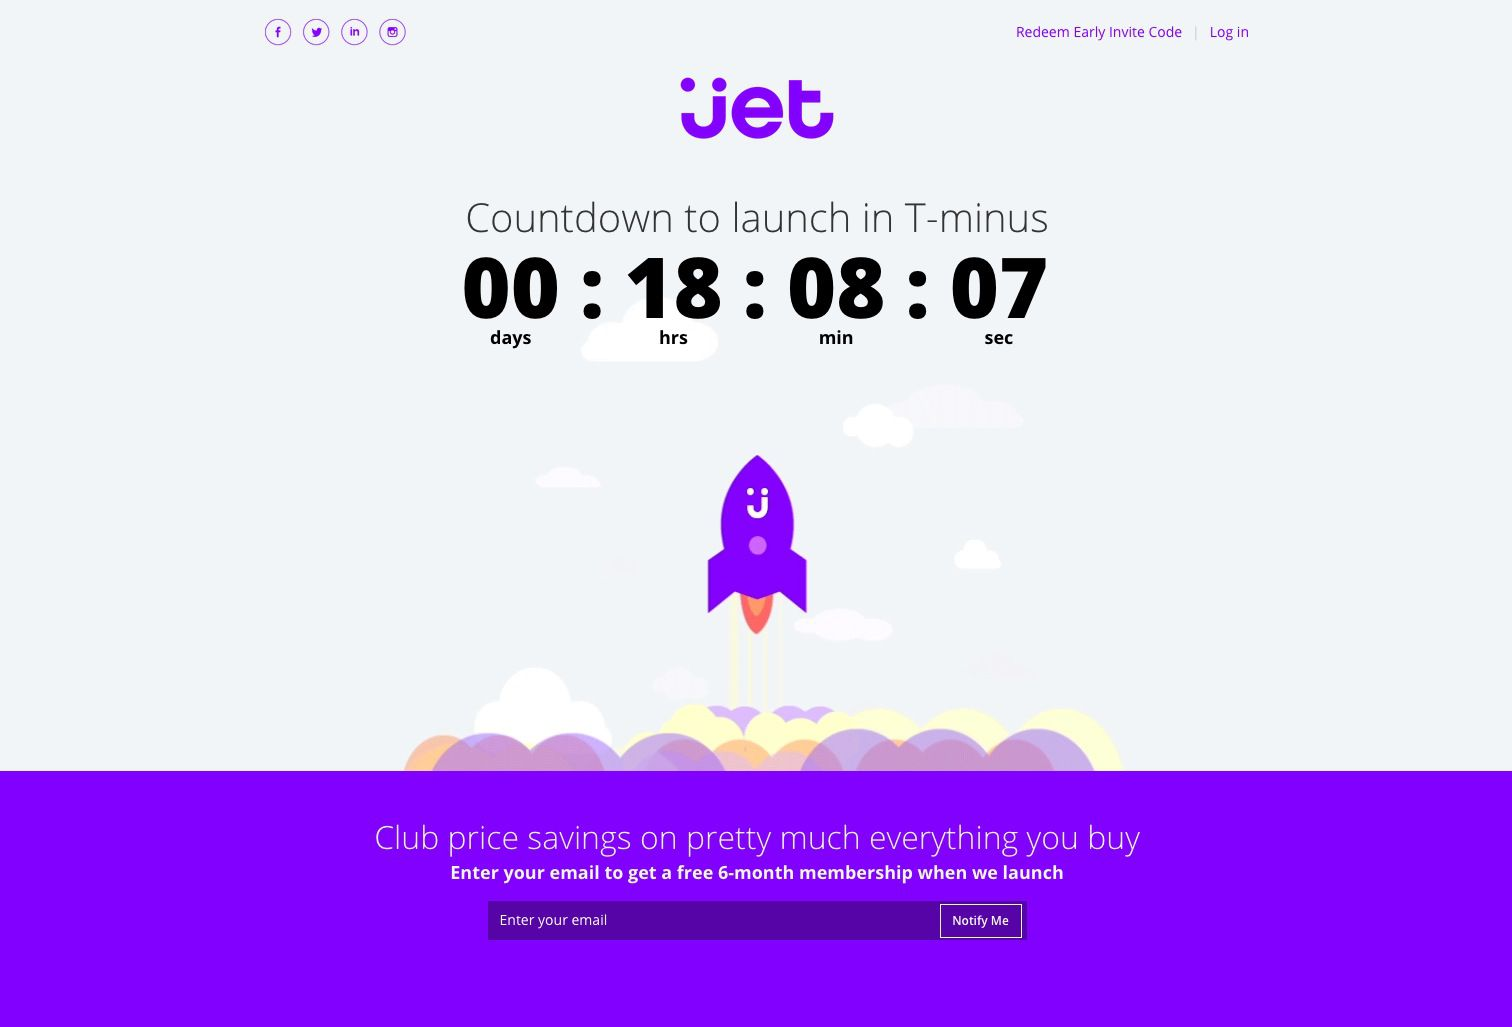 Not even running yet and Jet.com may command a market value of $3 billion.